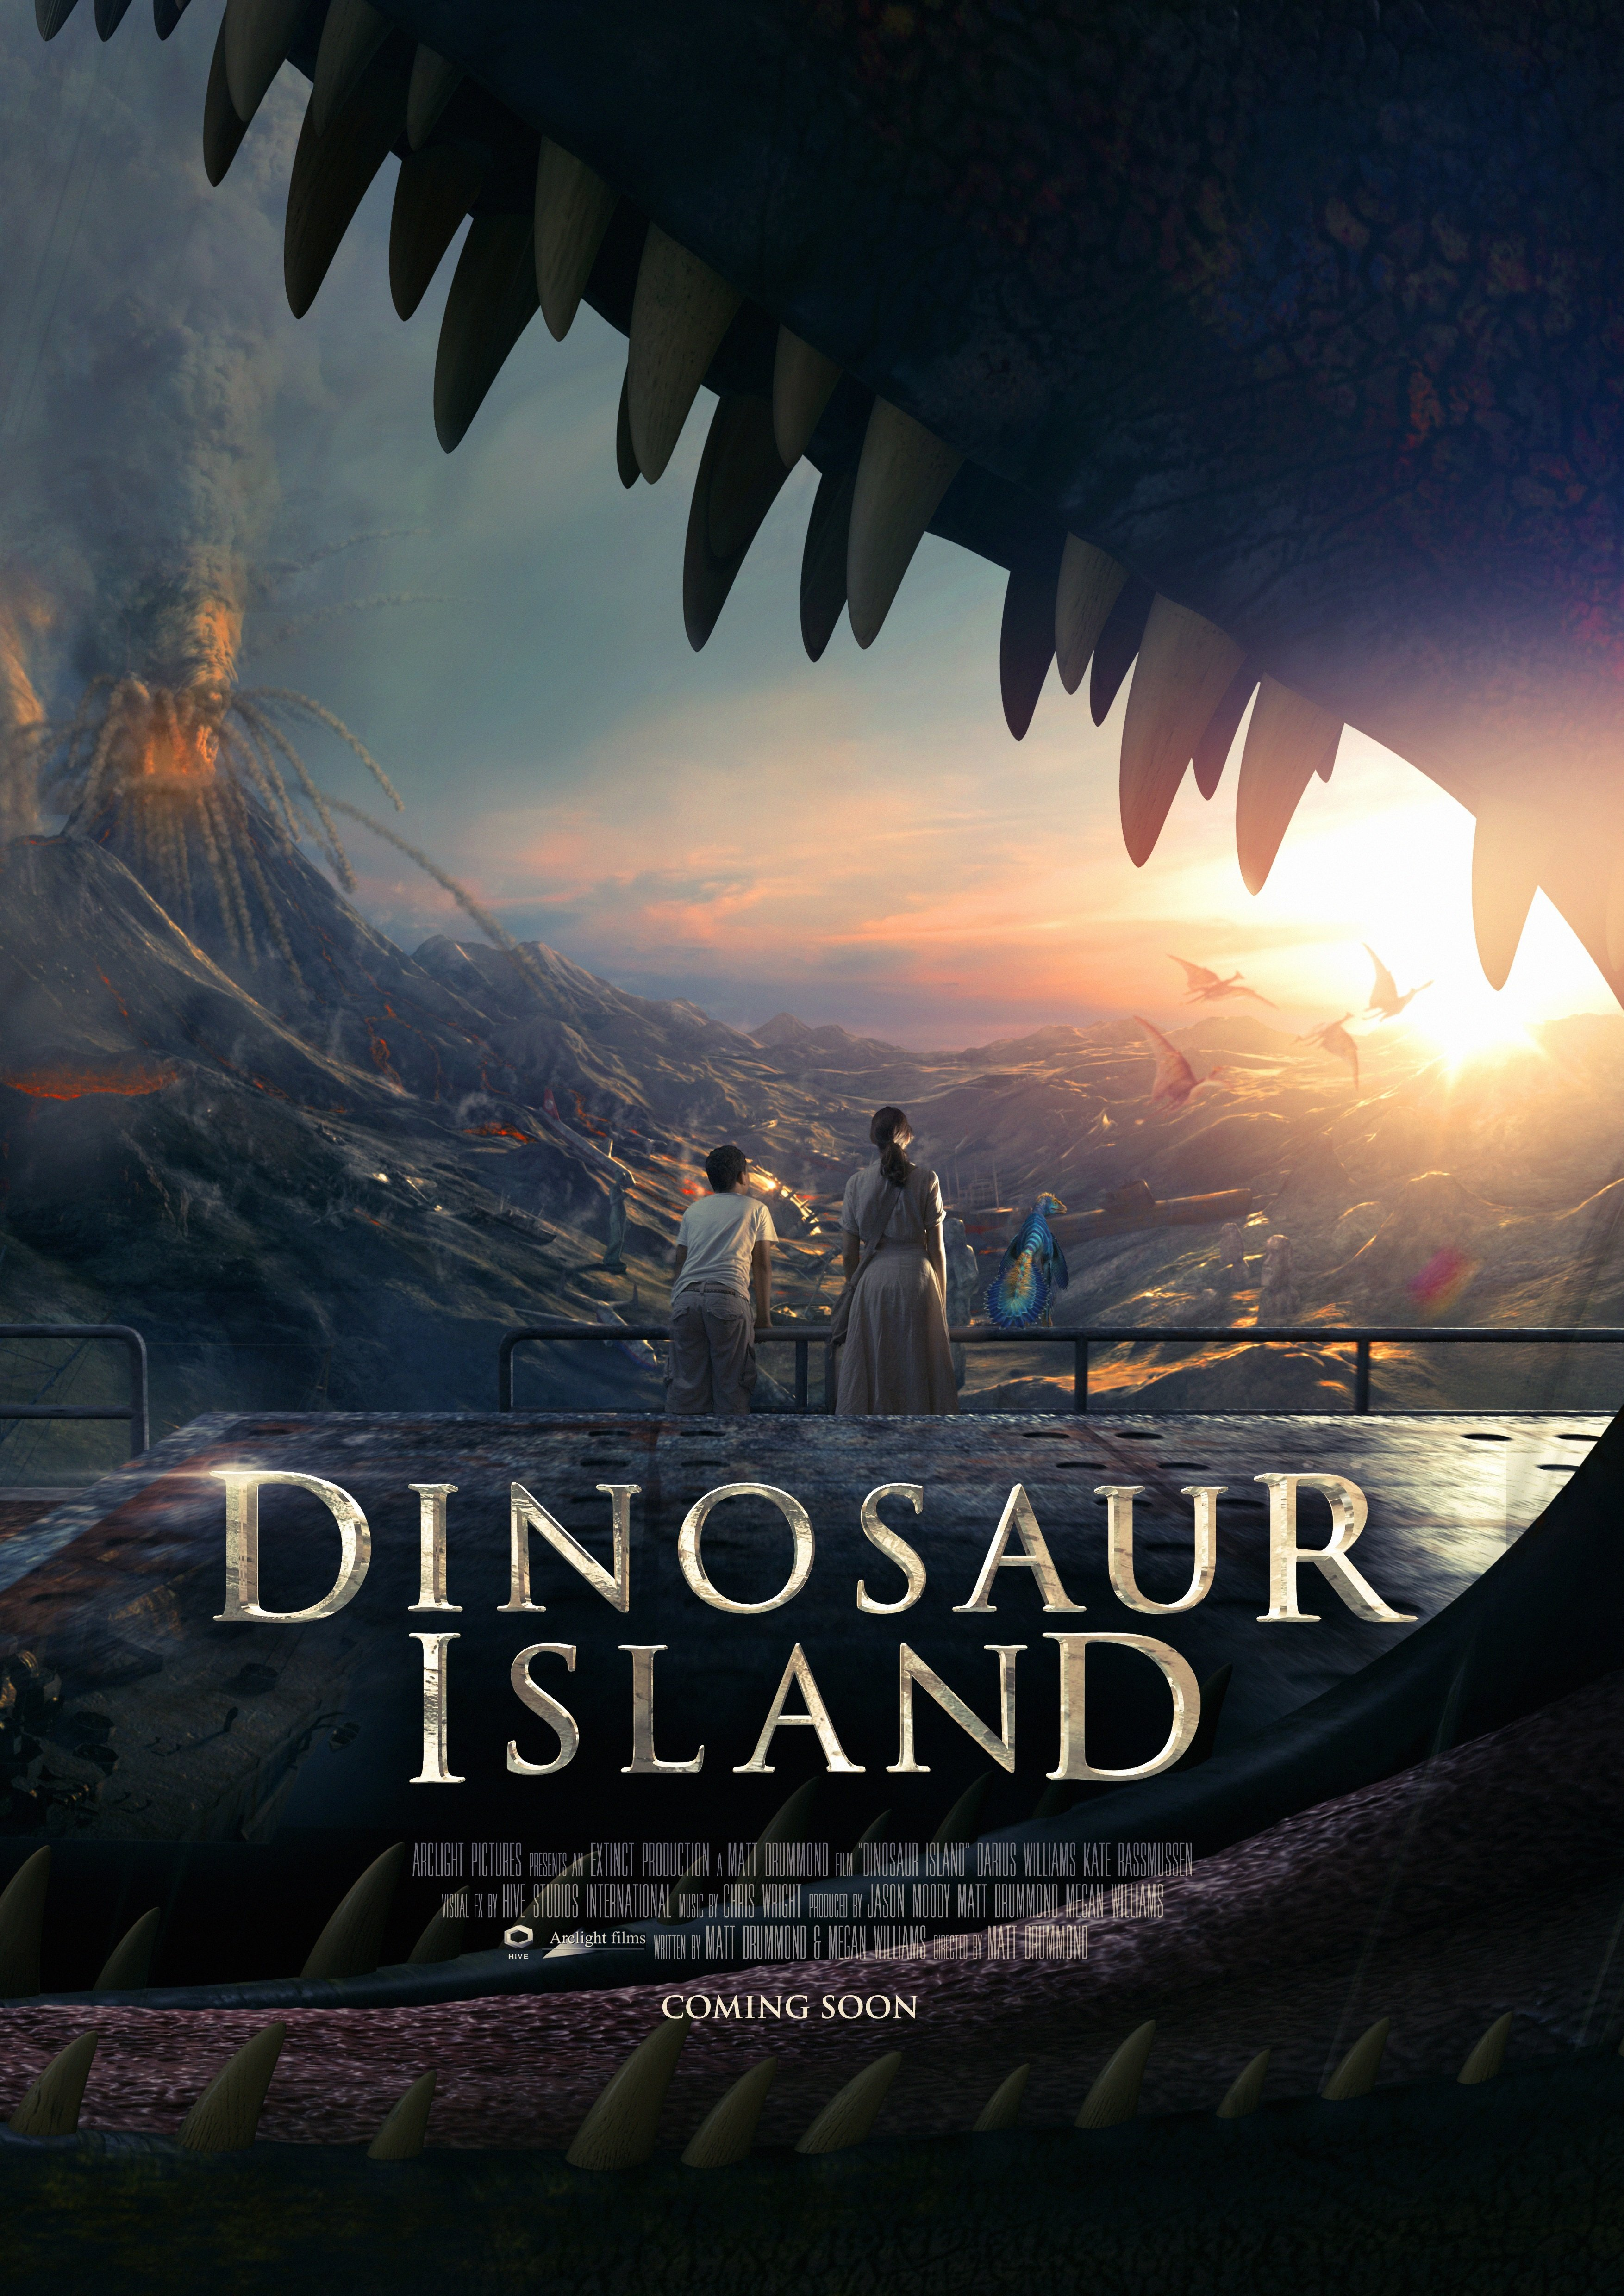 Against A Backdrop Of Mountains And Forests The Dinosaur Gosaurus Threateningly Stands Behind Three Theatrical Release Poster